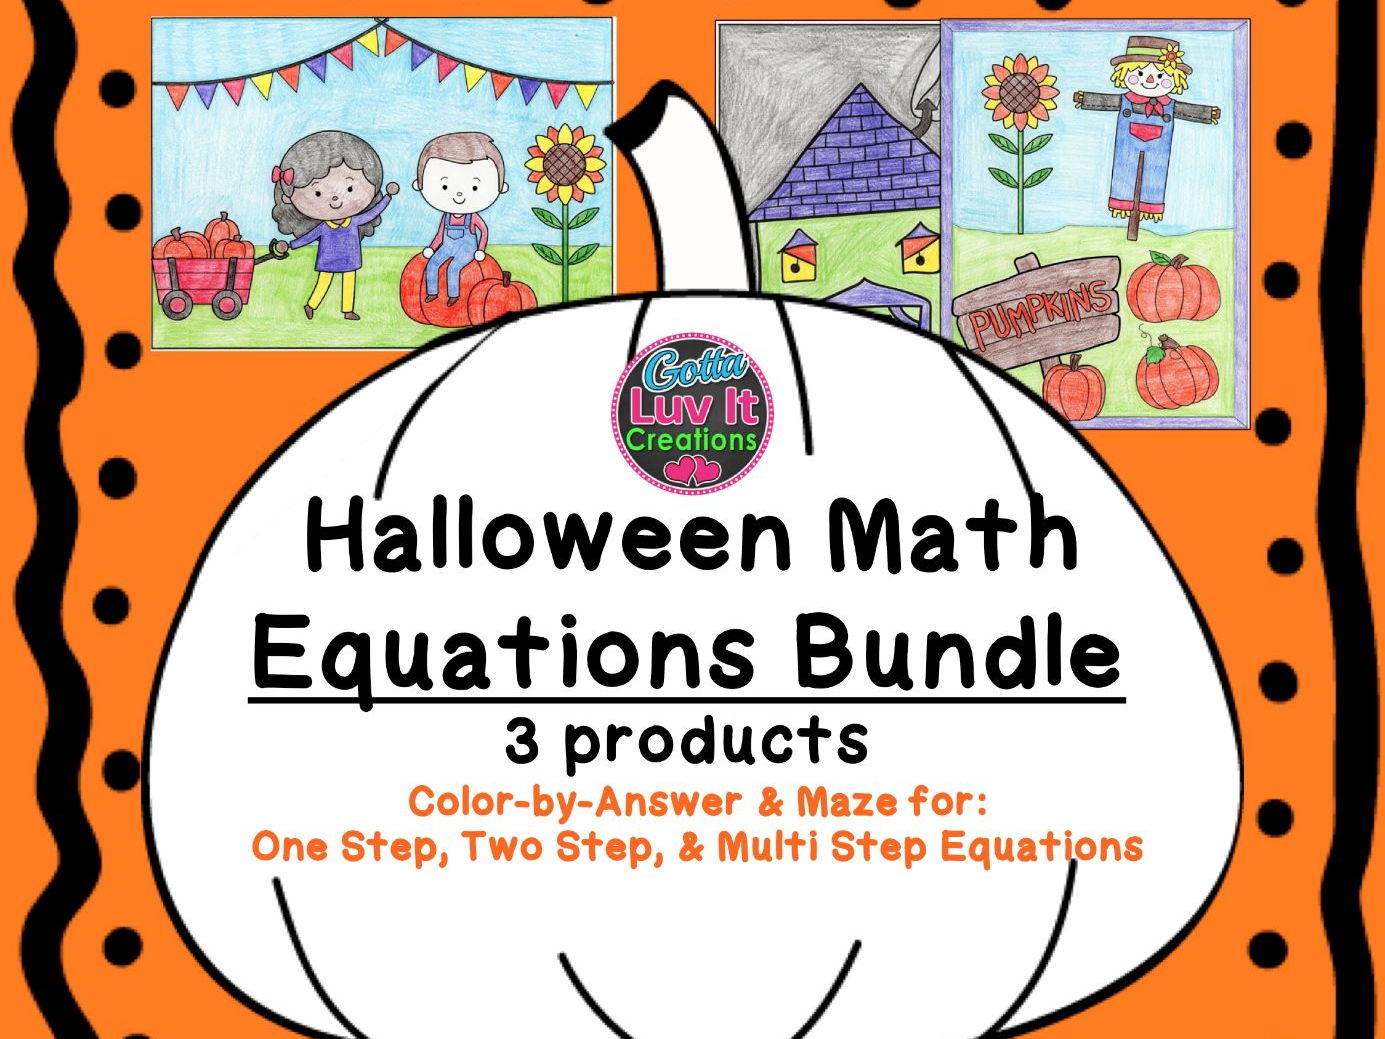 Solving Equations Halloween Fall Equations Maze & Color by Number Coloring Page Super Bundle